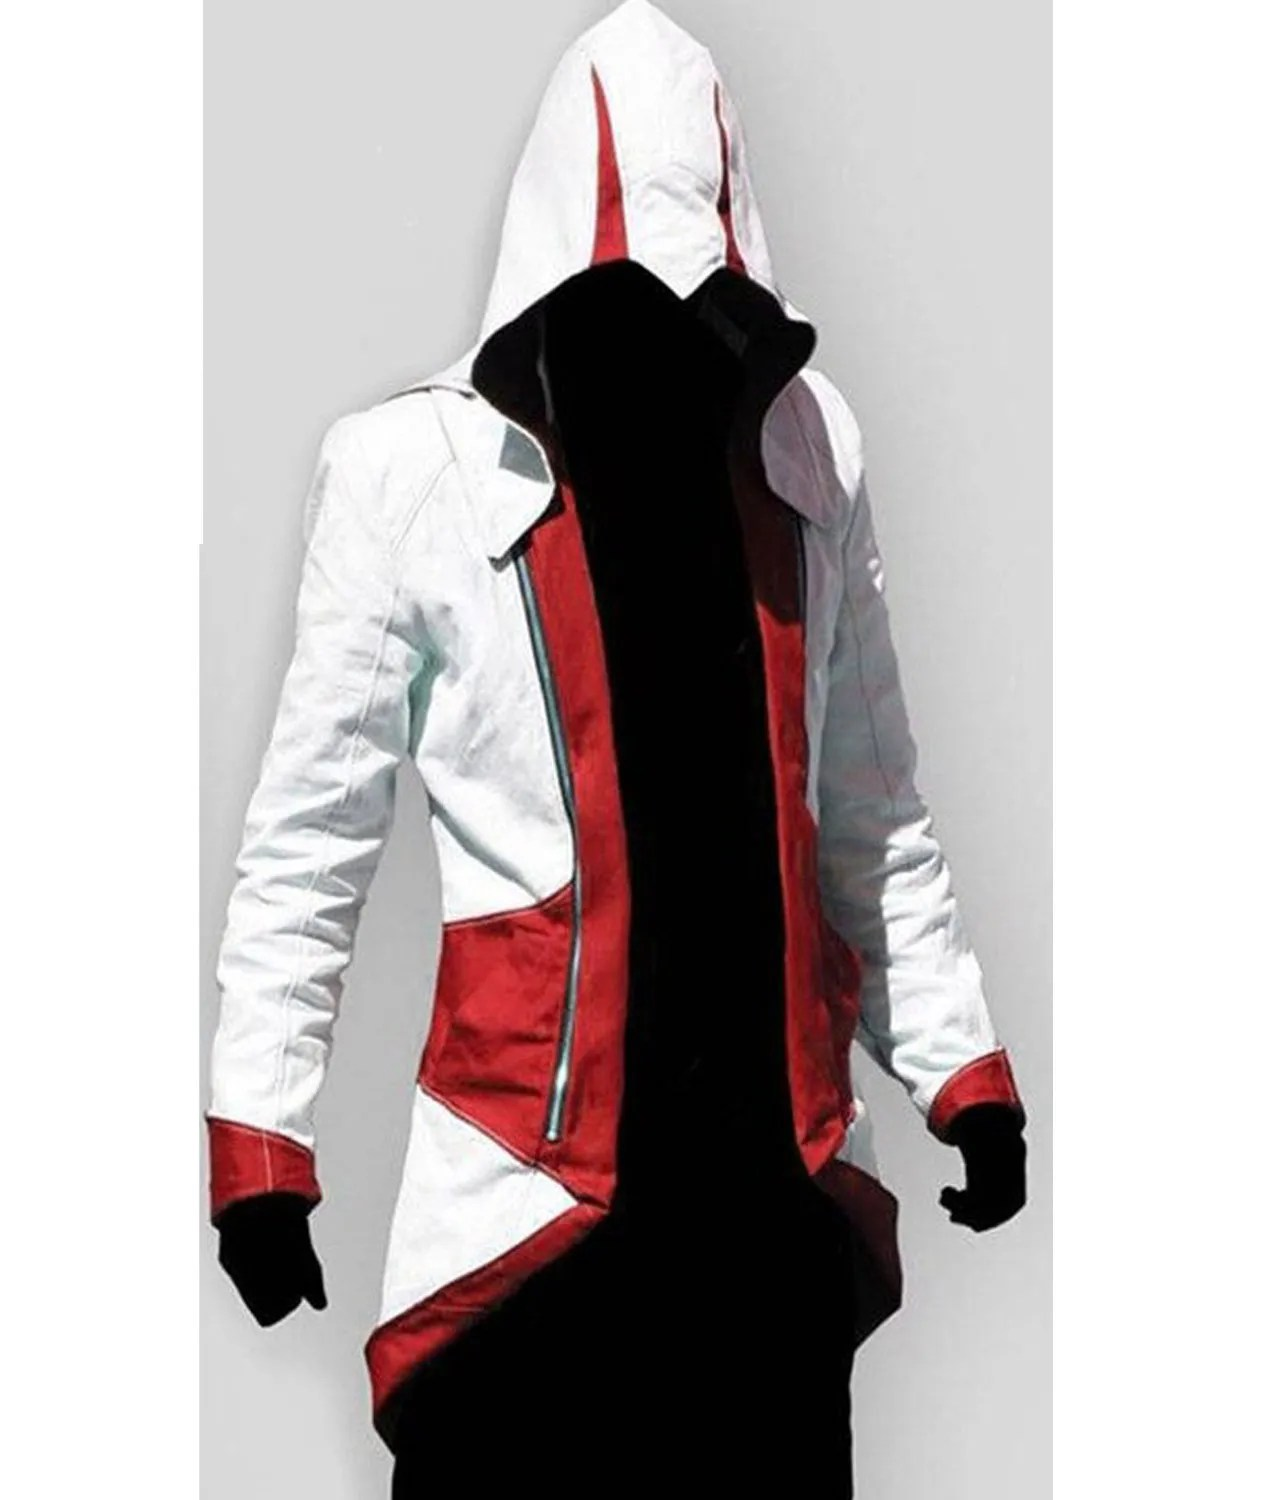 assassins-creed-red-and-white-connor-kenway-tailcoat